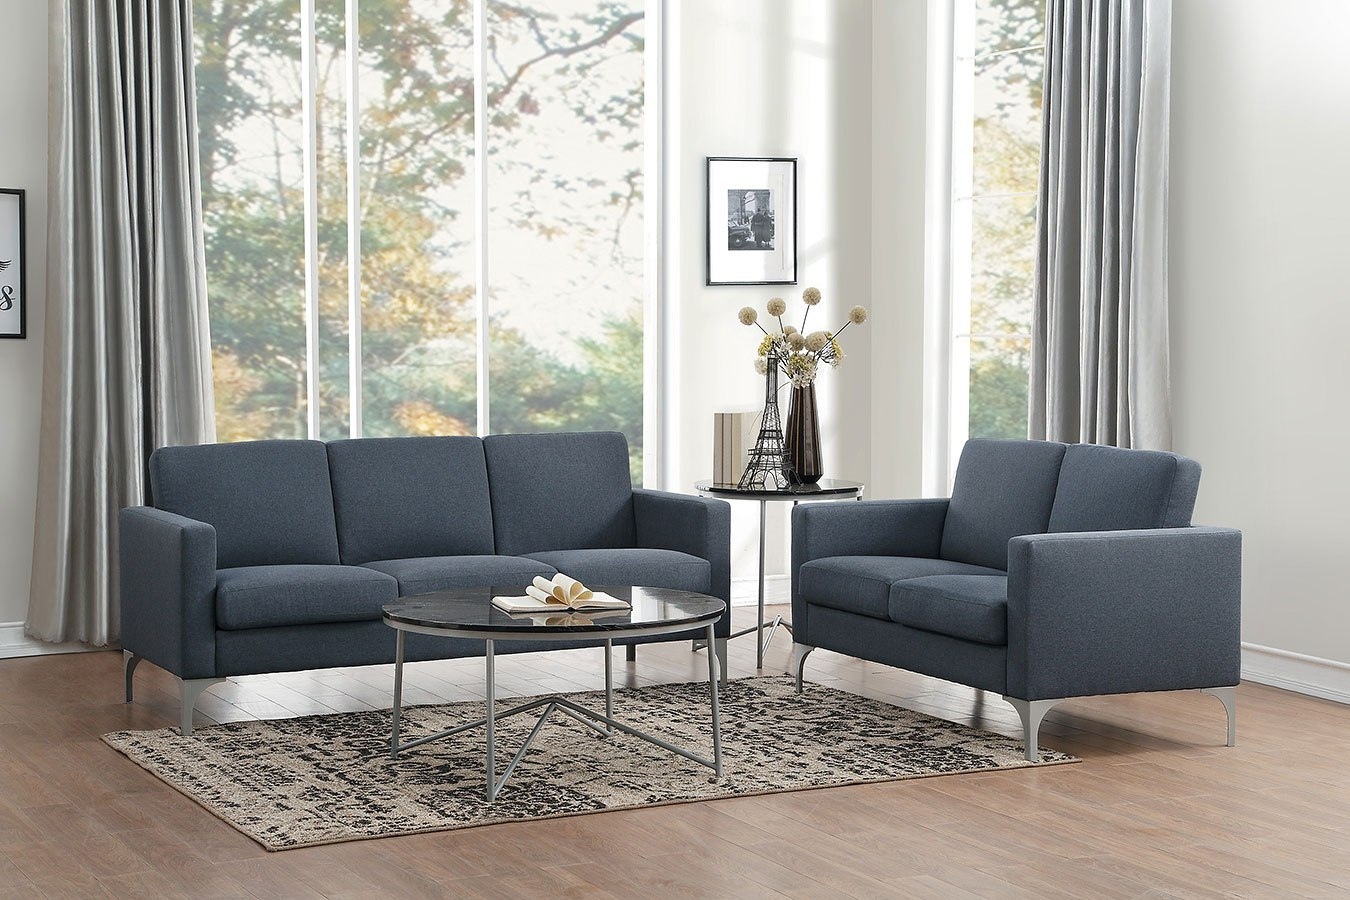 Soho Living Room Set Dark Gray By Homelegance